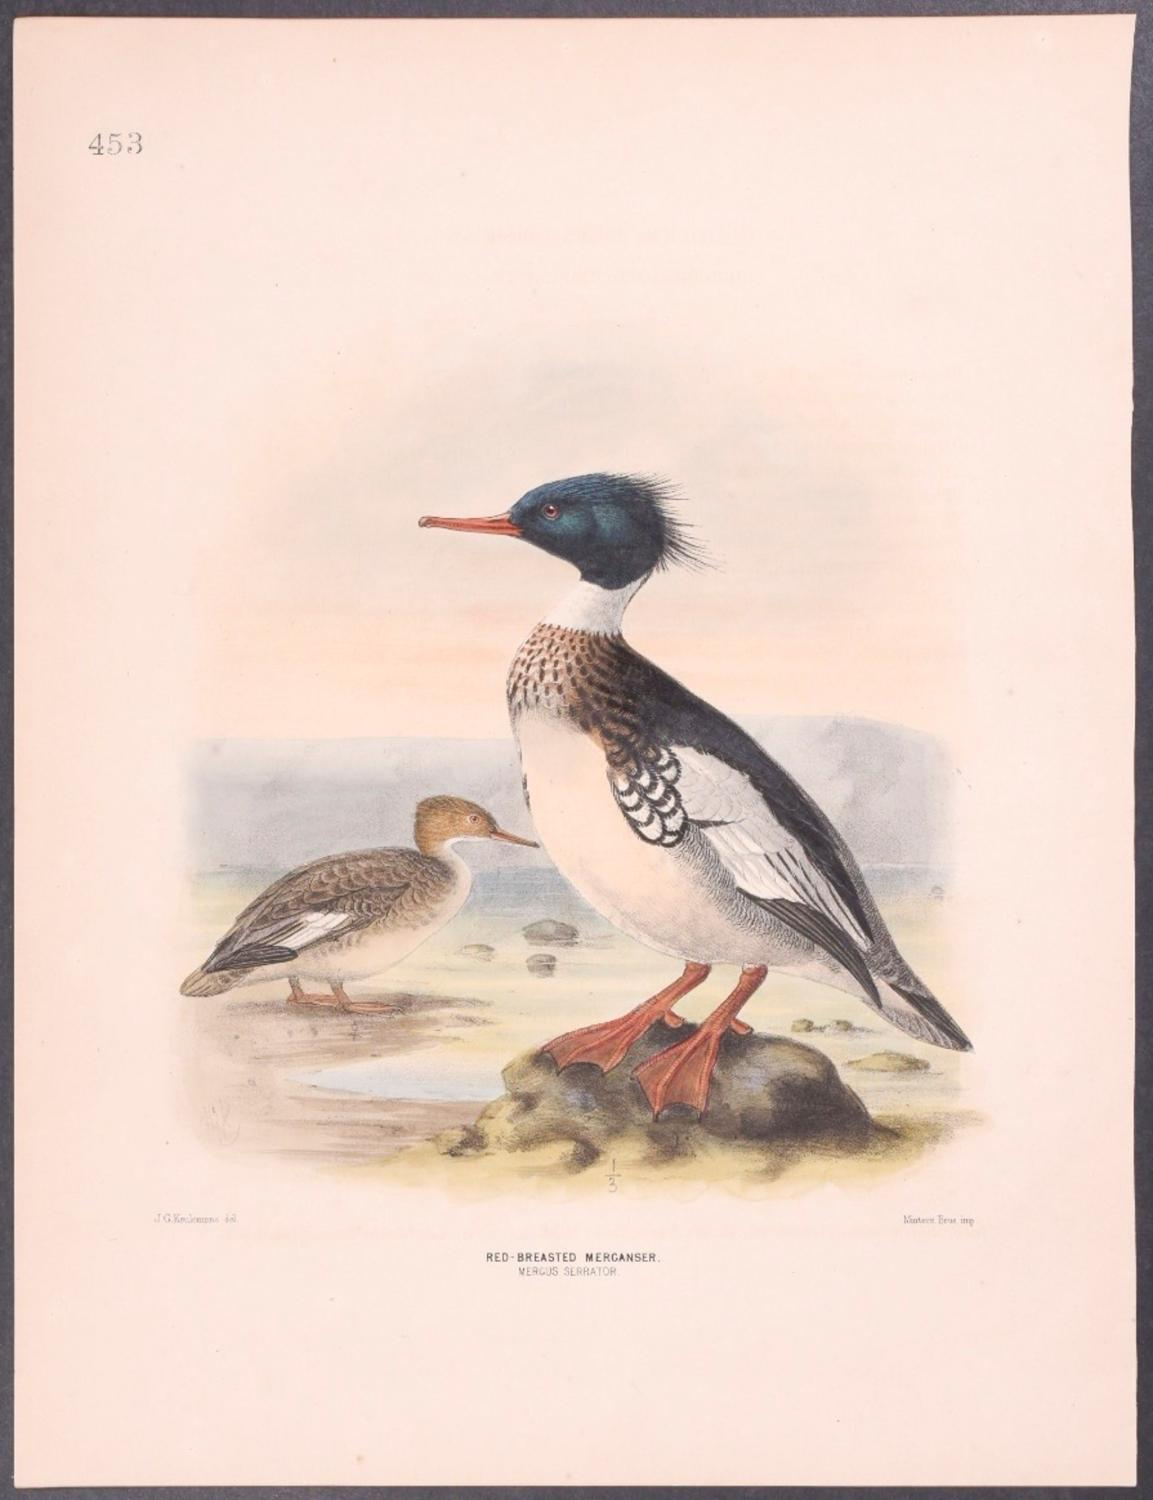 Red-breasted Merganser Henry Dresser [Fine] (bi_30492531495) photo